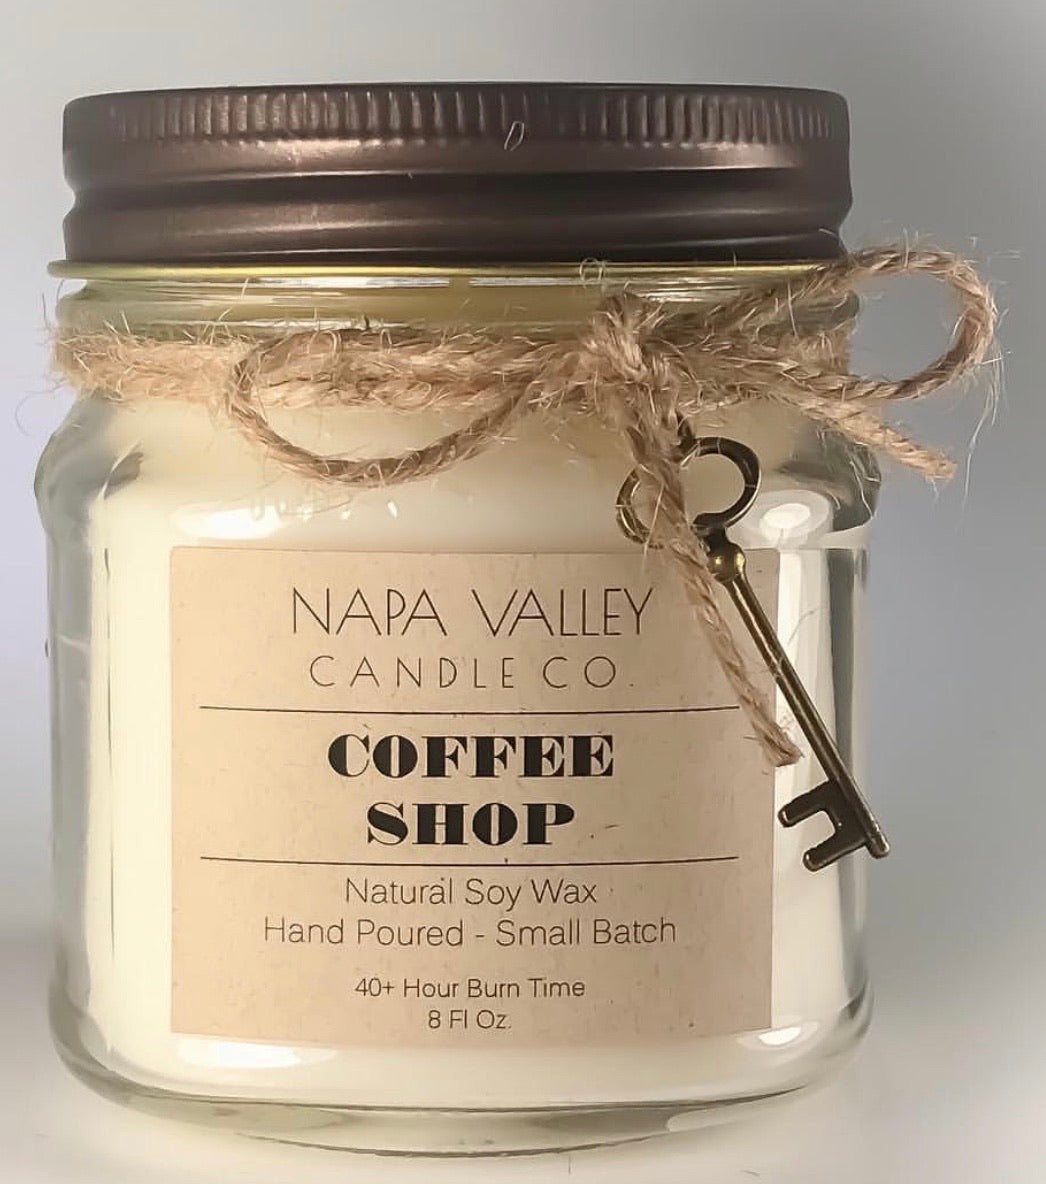 Coffee Shop 8oz. Candle